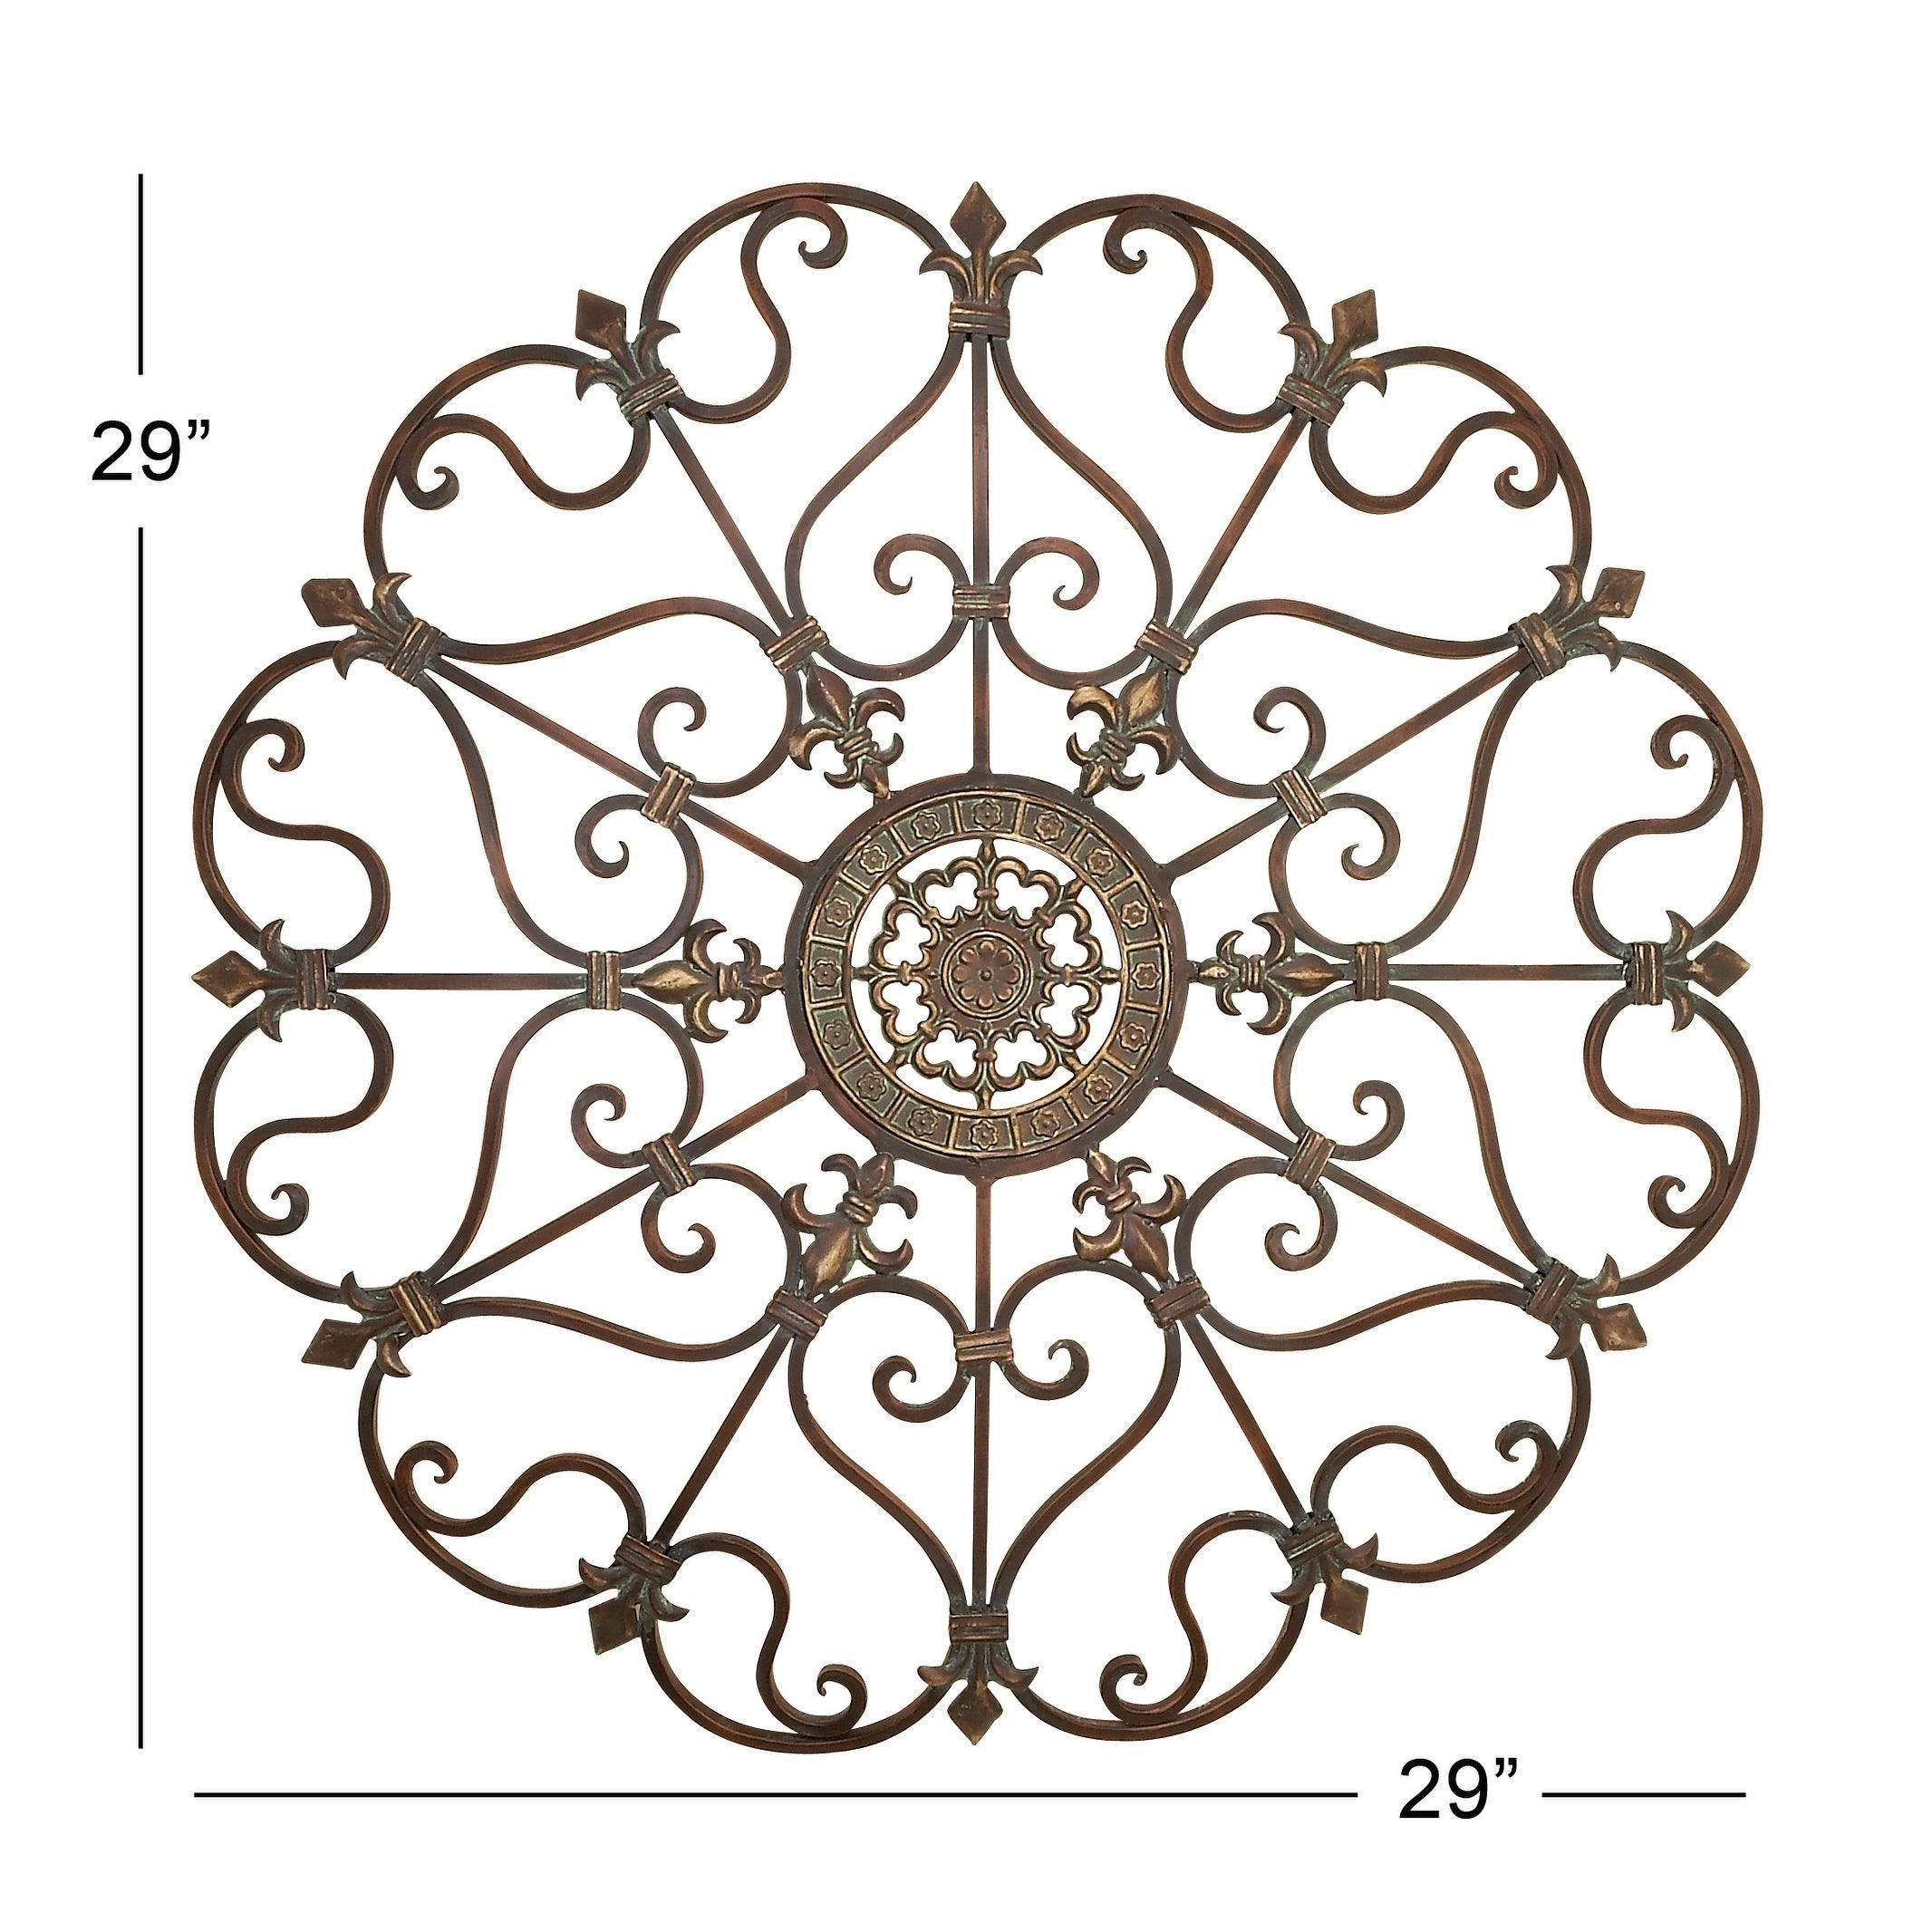 Traditional 29 Inch Ornate Metal Wall Decorstudio 350 Intended For 2 Piece Metal Wall Decor Sets By Fleur De Lis Living (View 20 of 30)